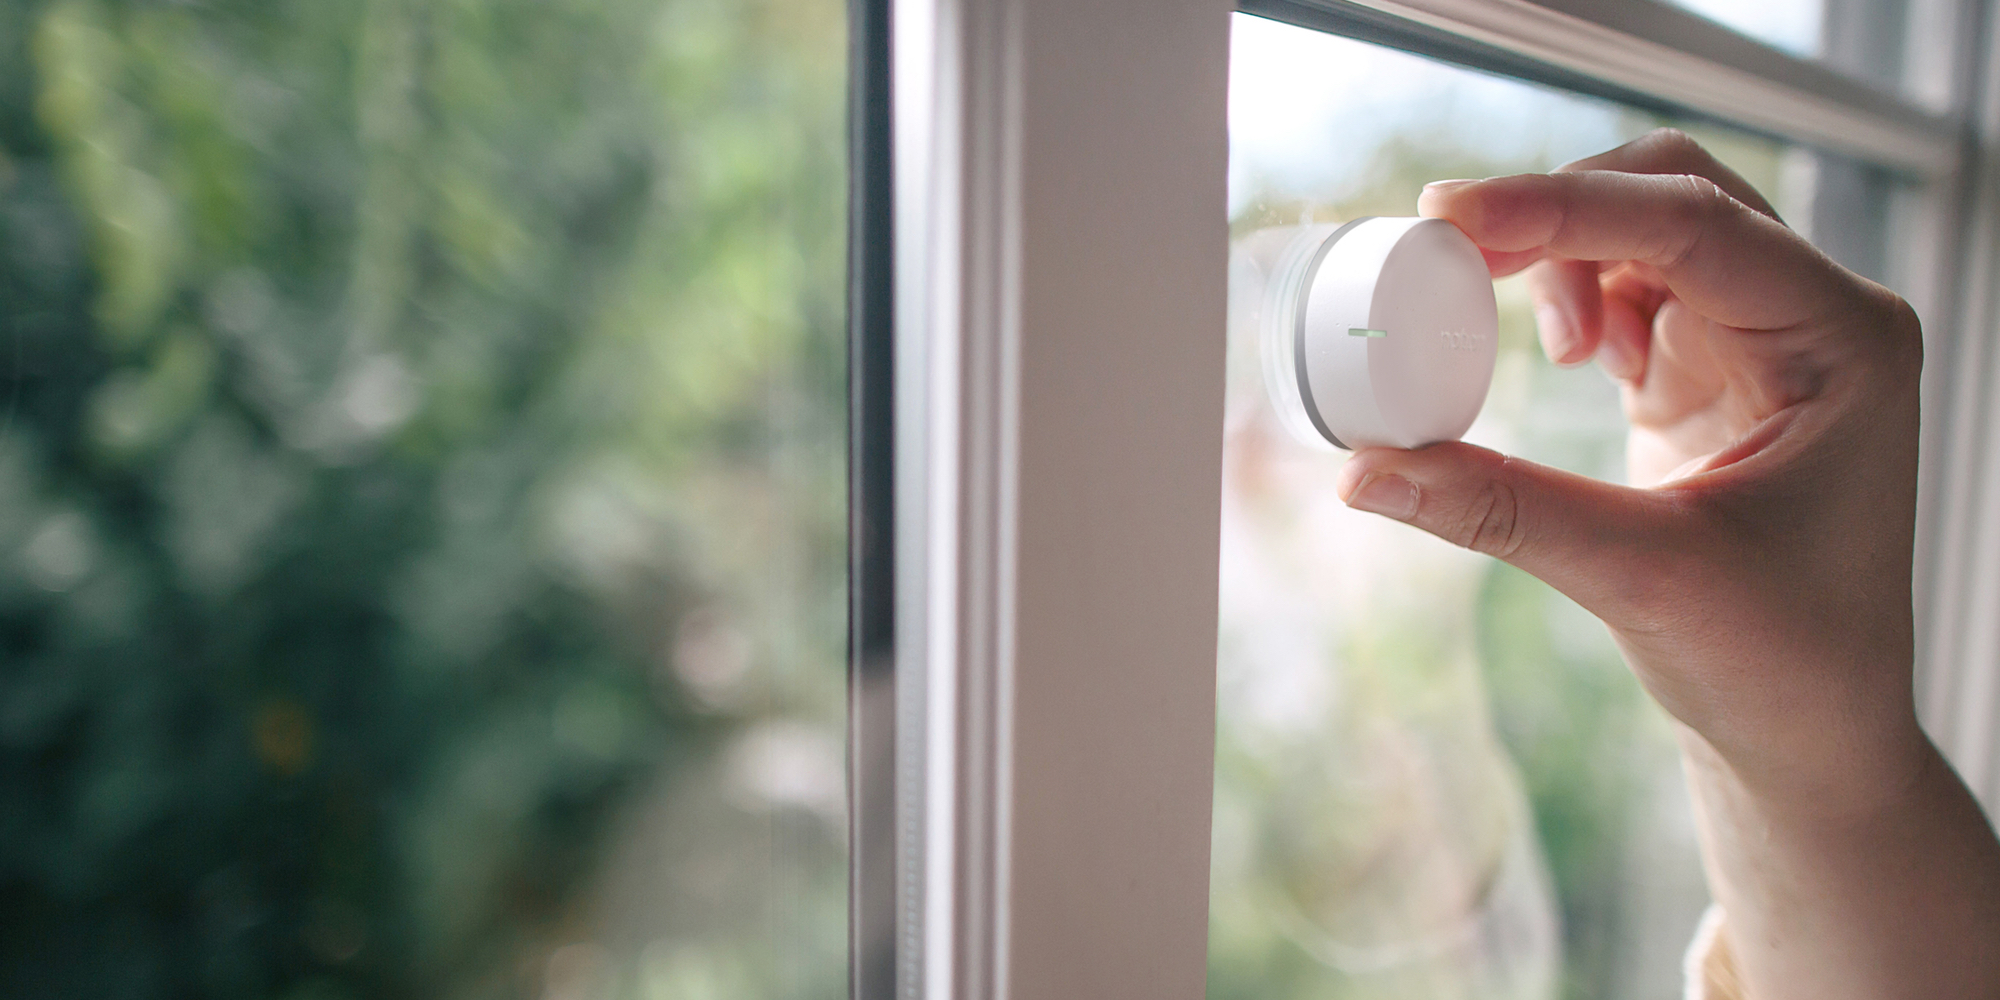 Notion debuts a streamlined and simplicity-focused home monitoring solution